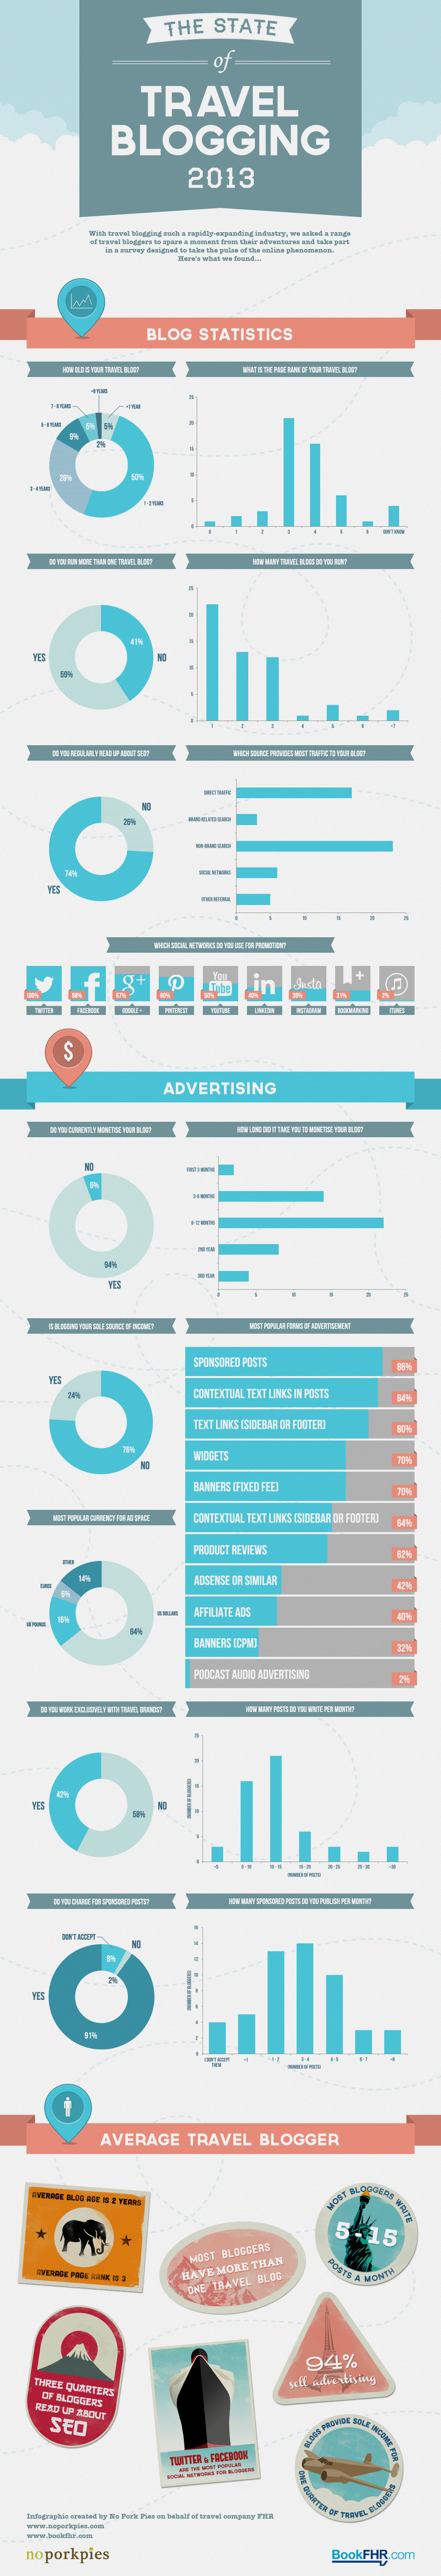 Travel-Blogging-2013-Infographic